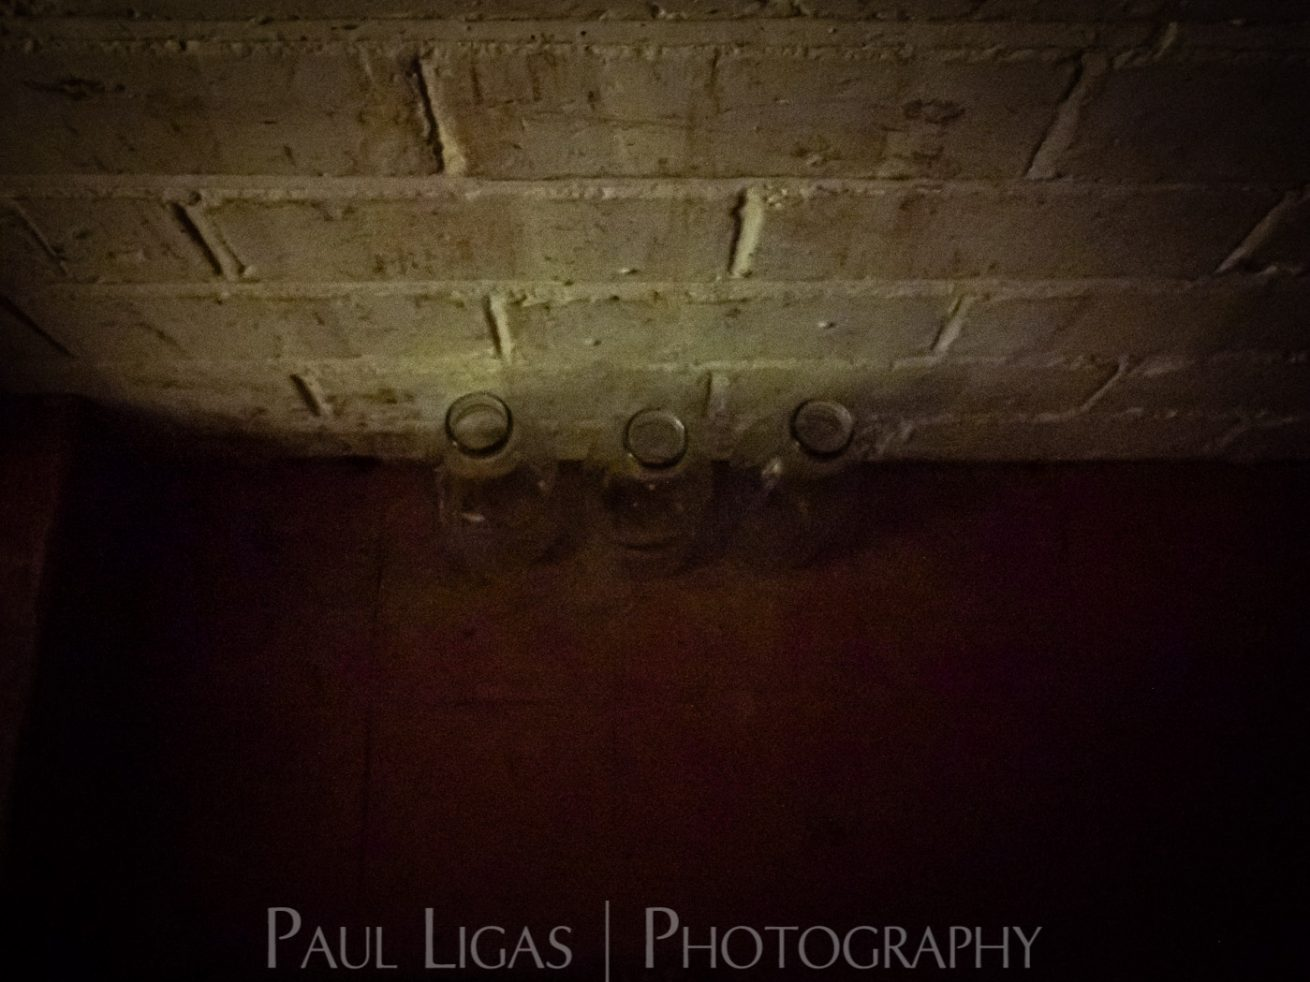 photos from inside a lockdown part 8 paul ligas photography hereford ledbury-212842